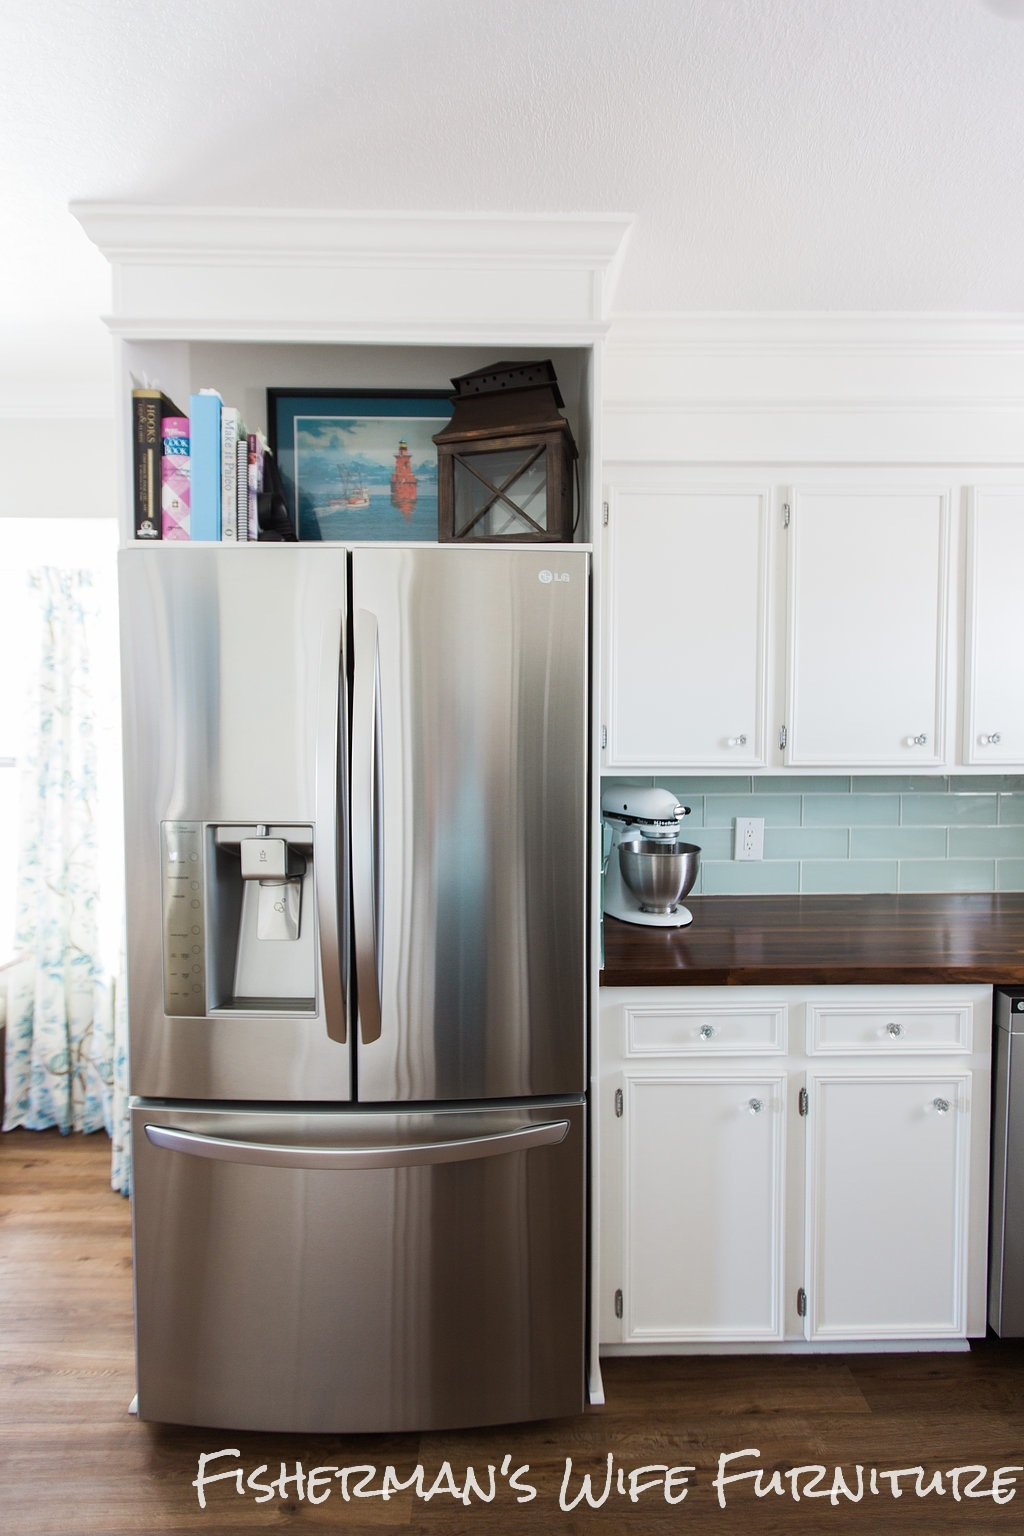 DIY Refrigerator Enclosure |